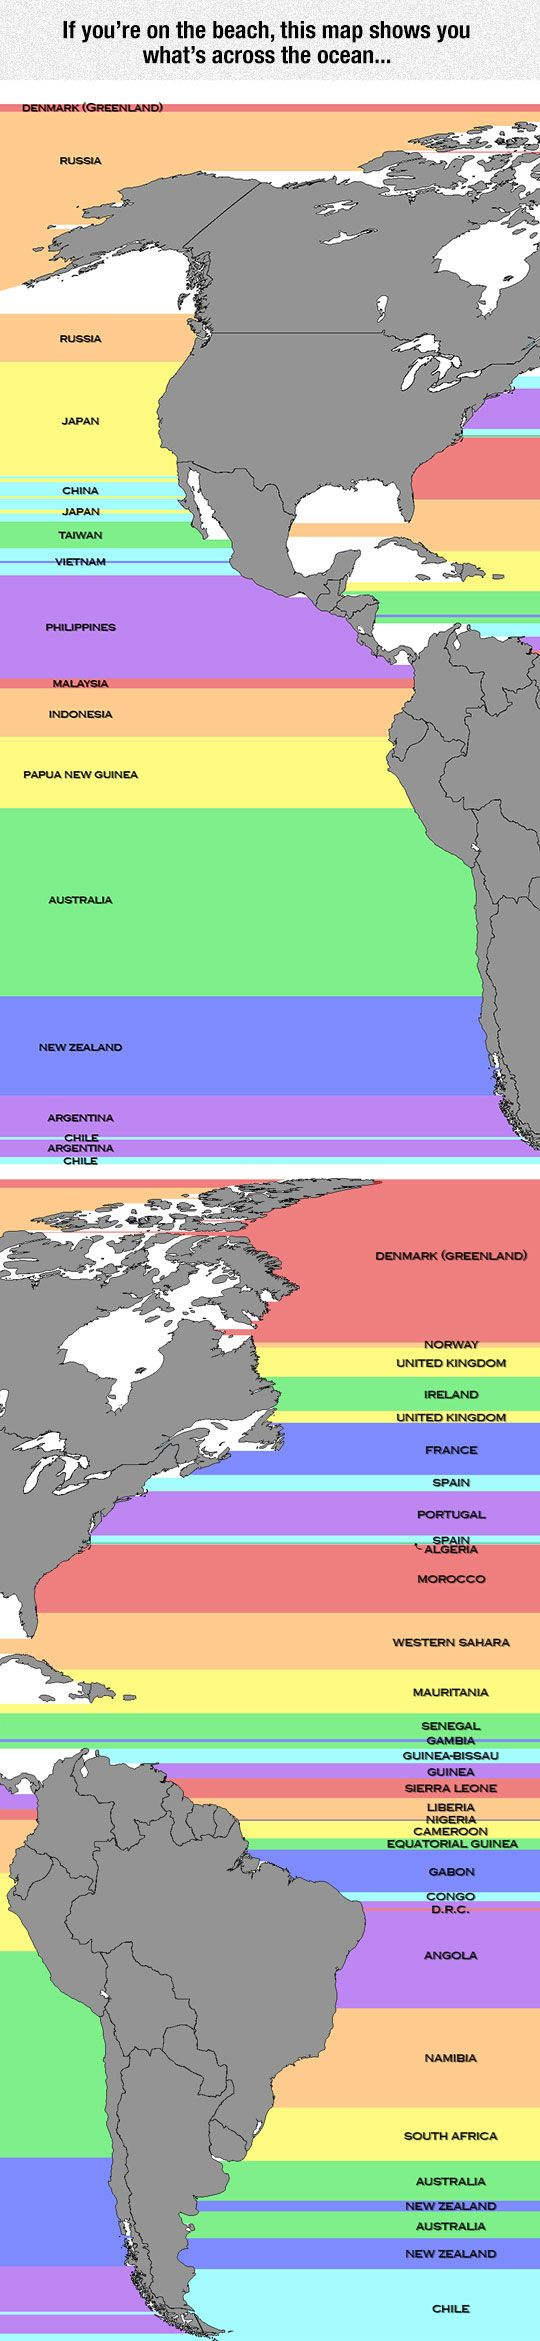 If You're On The Beach, This Shows You What's Across The Ocean